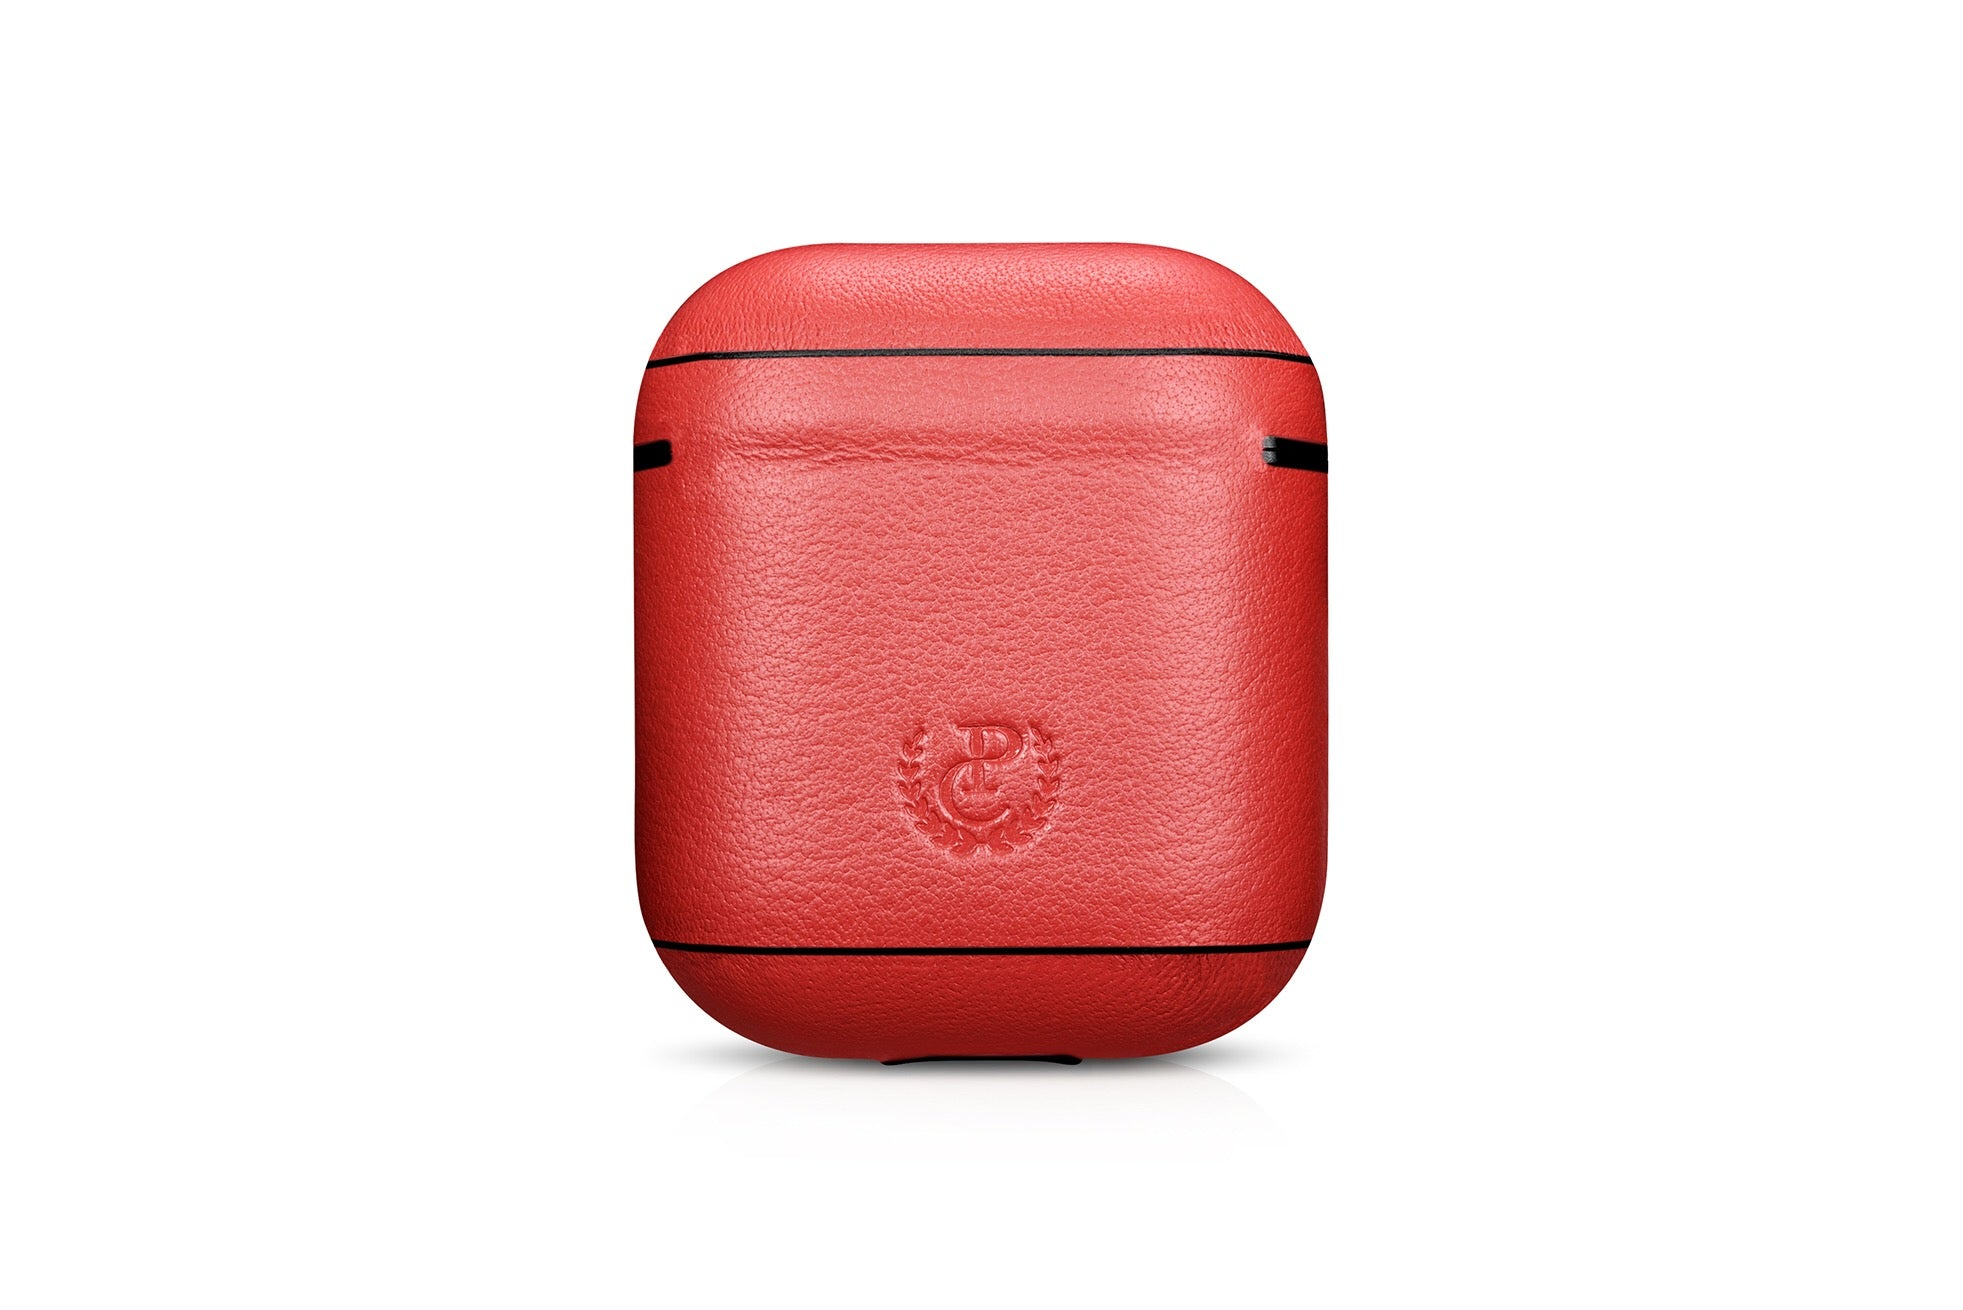 Napa Red Premium Leather AirPods 1 & 2 Case